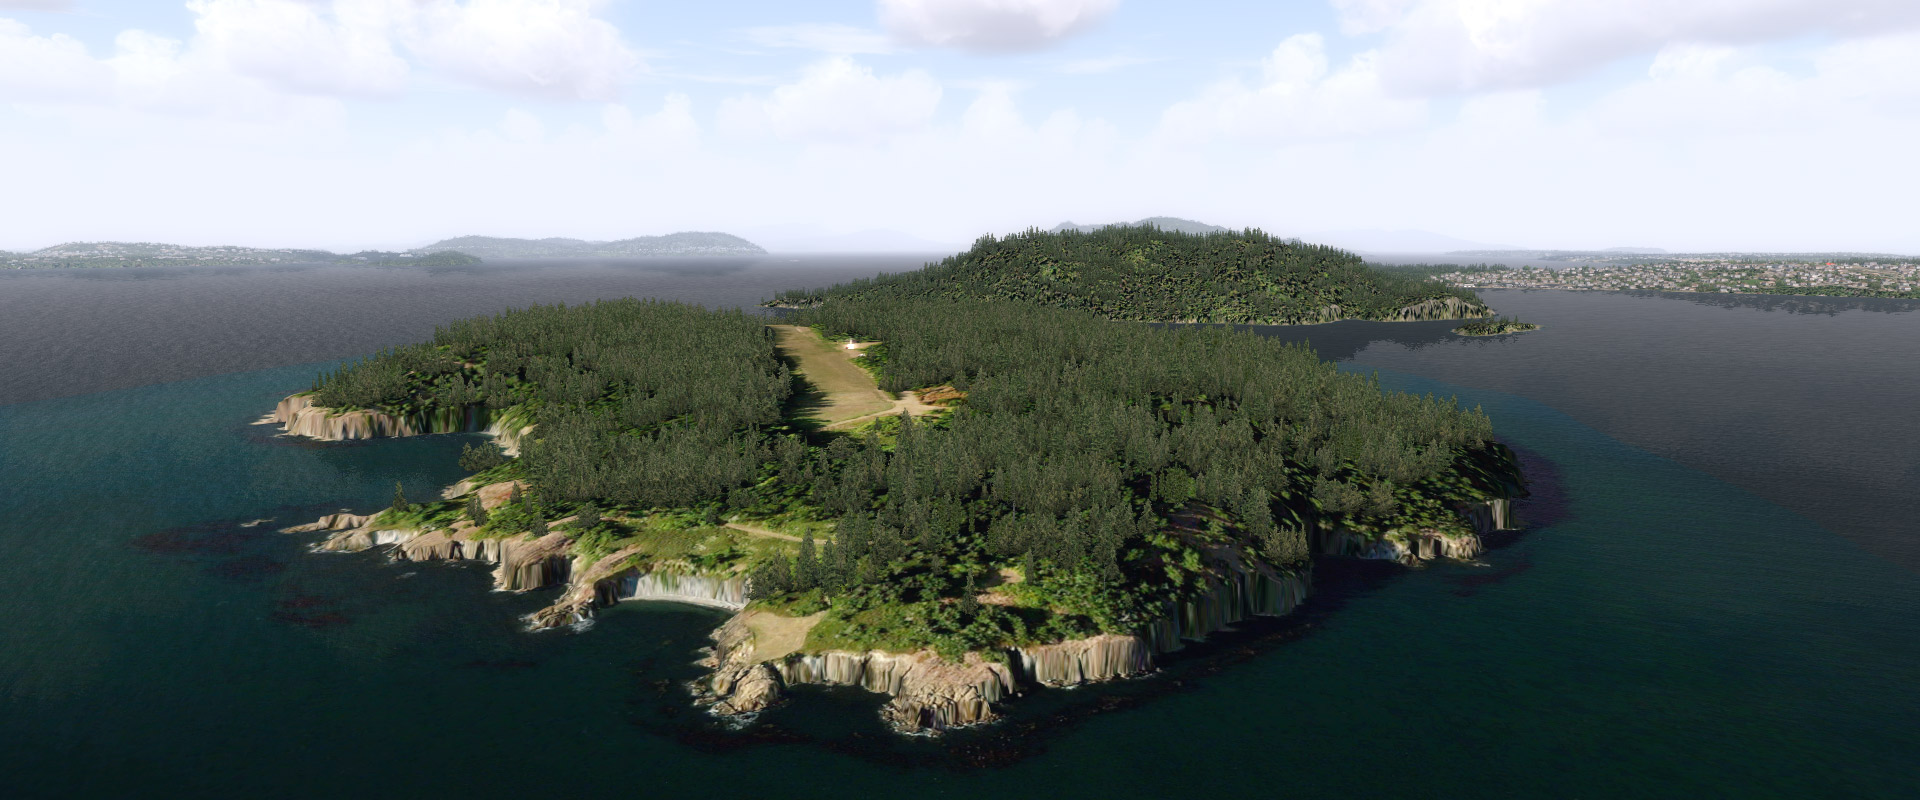 Allan Island v1.1.2 – Including Prepar3D v4 Support!